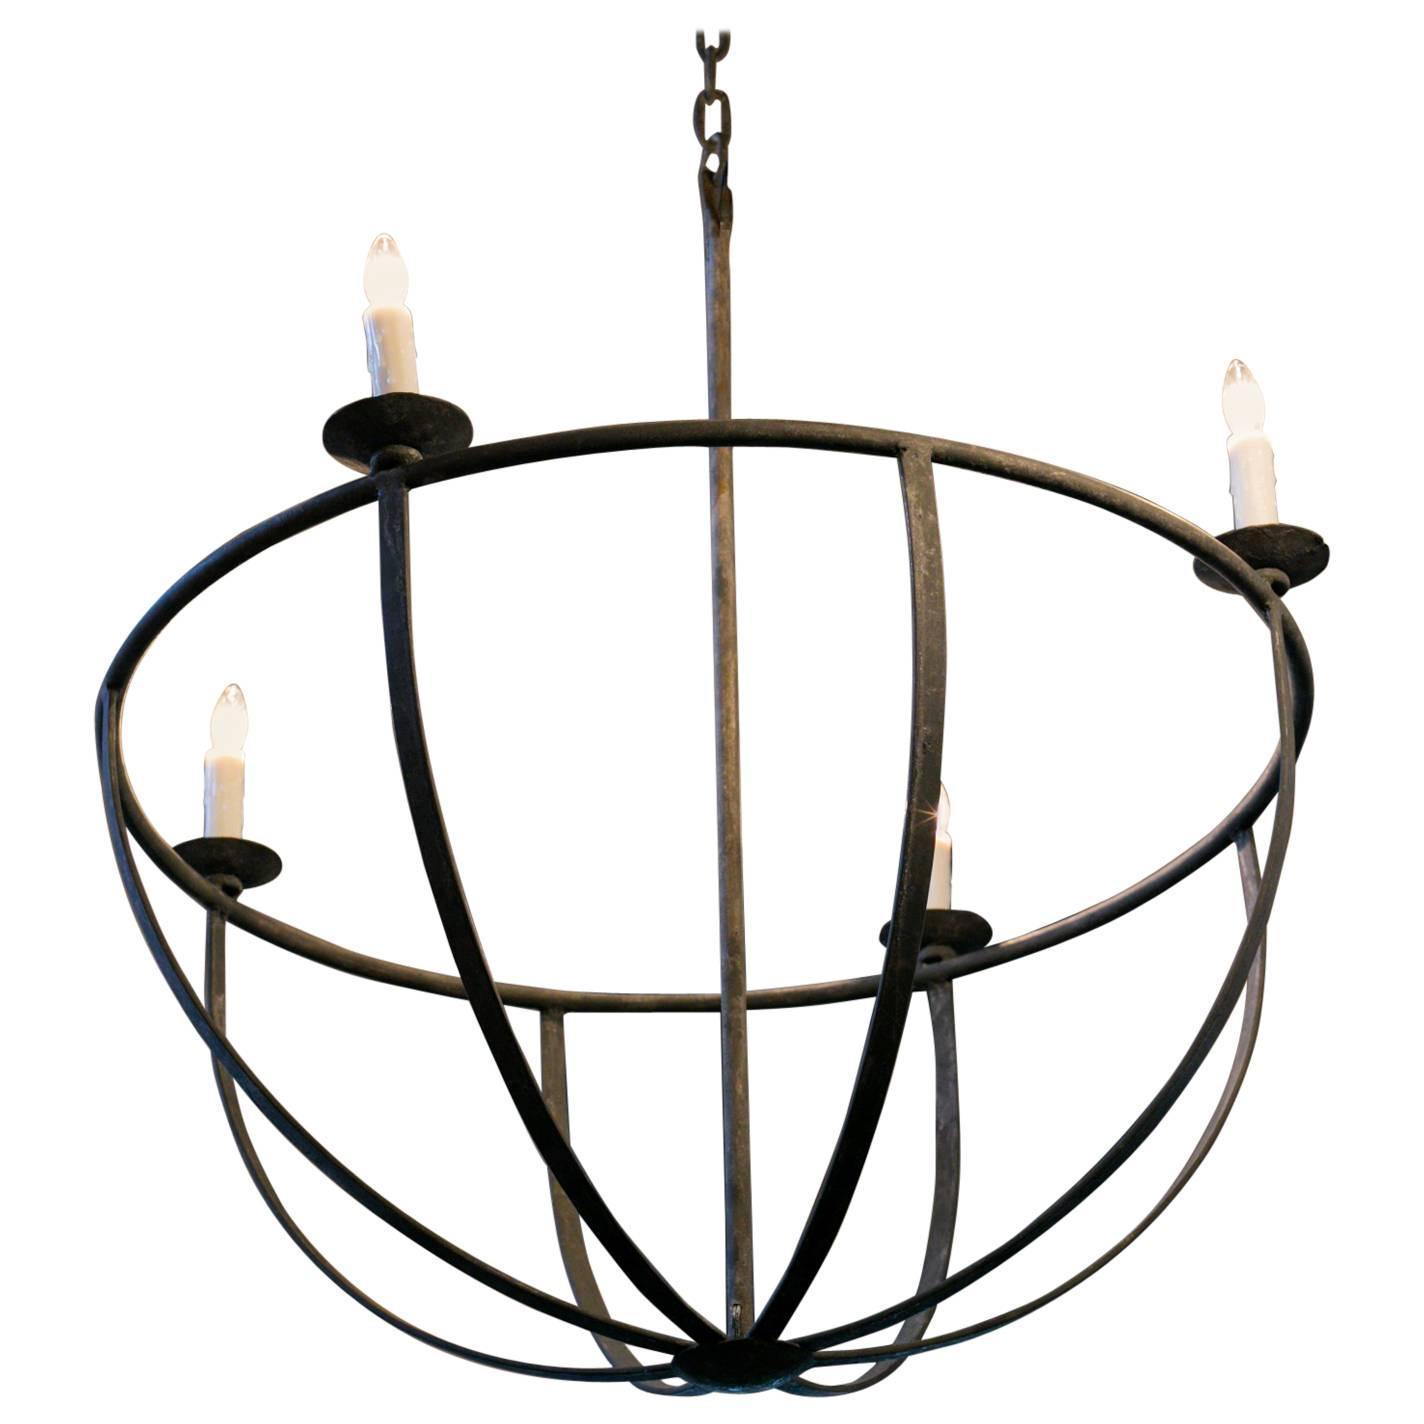 Handmade iron pike chandelier for sale at 1stdibs for Unique chandeliers for sale